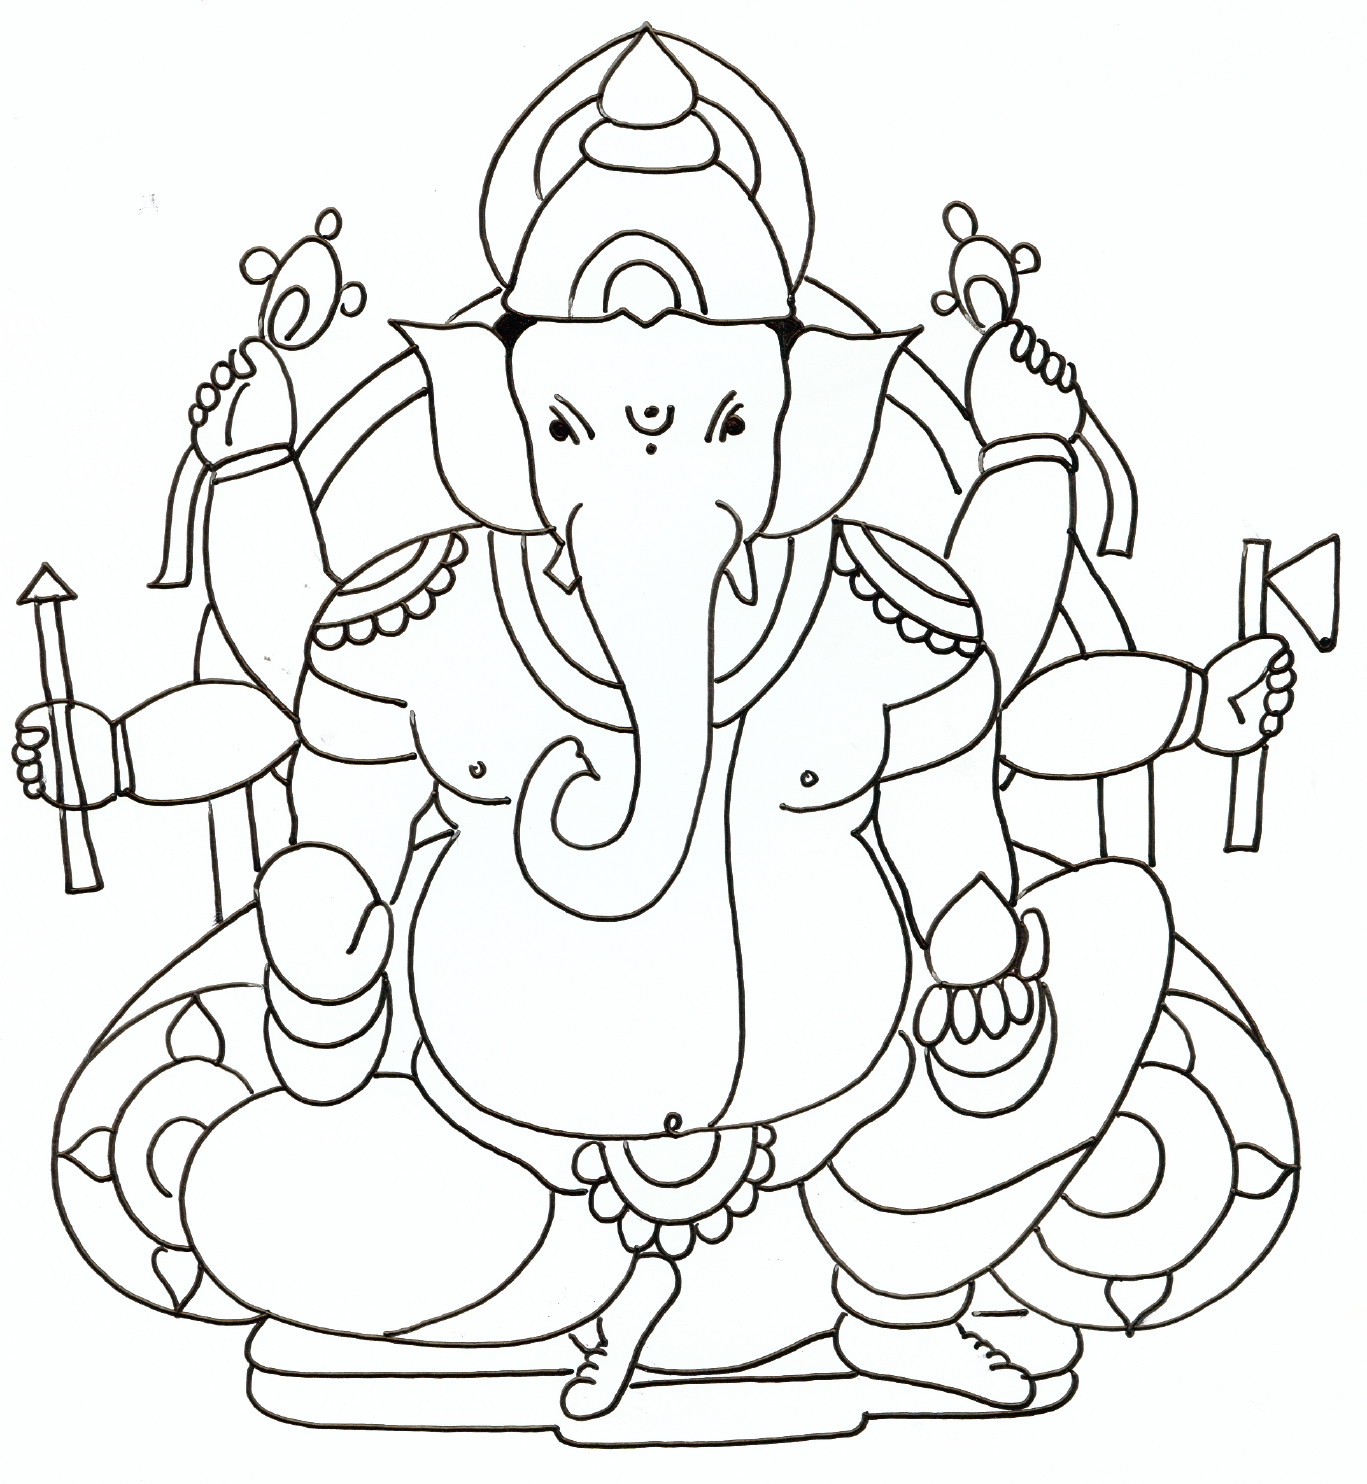 1367x1484 Gallery Ganesha Drawing For Kids,